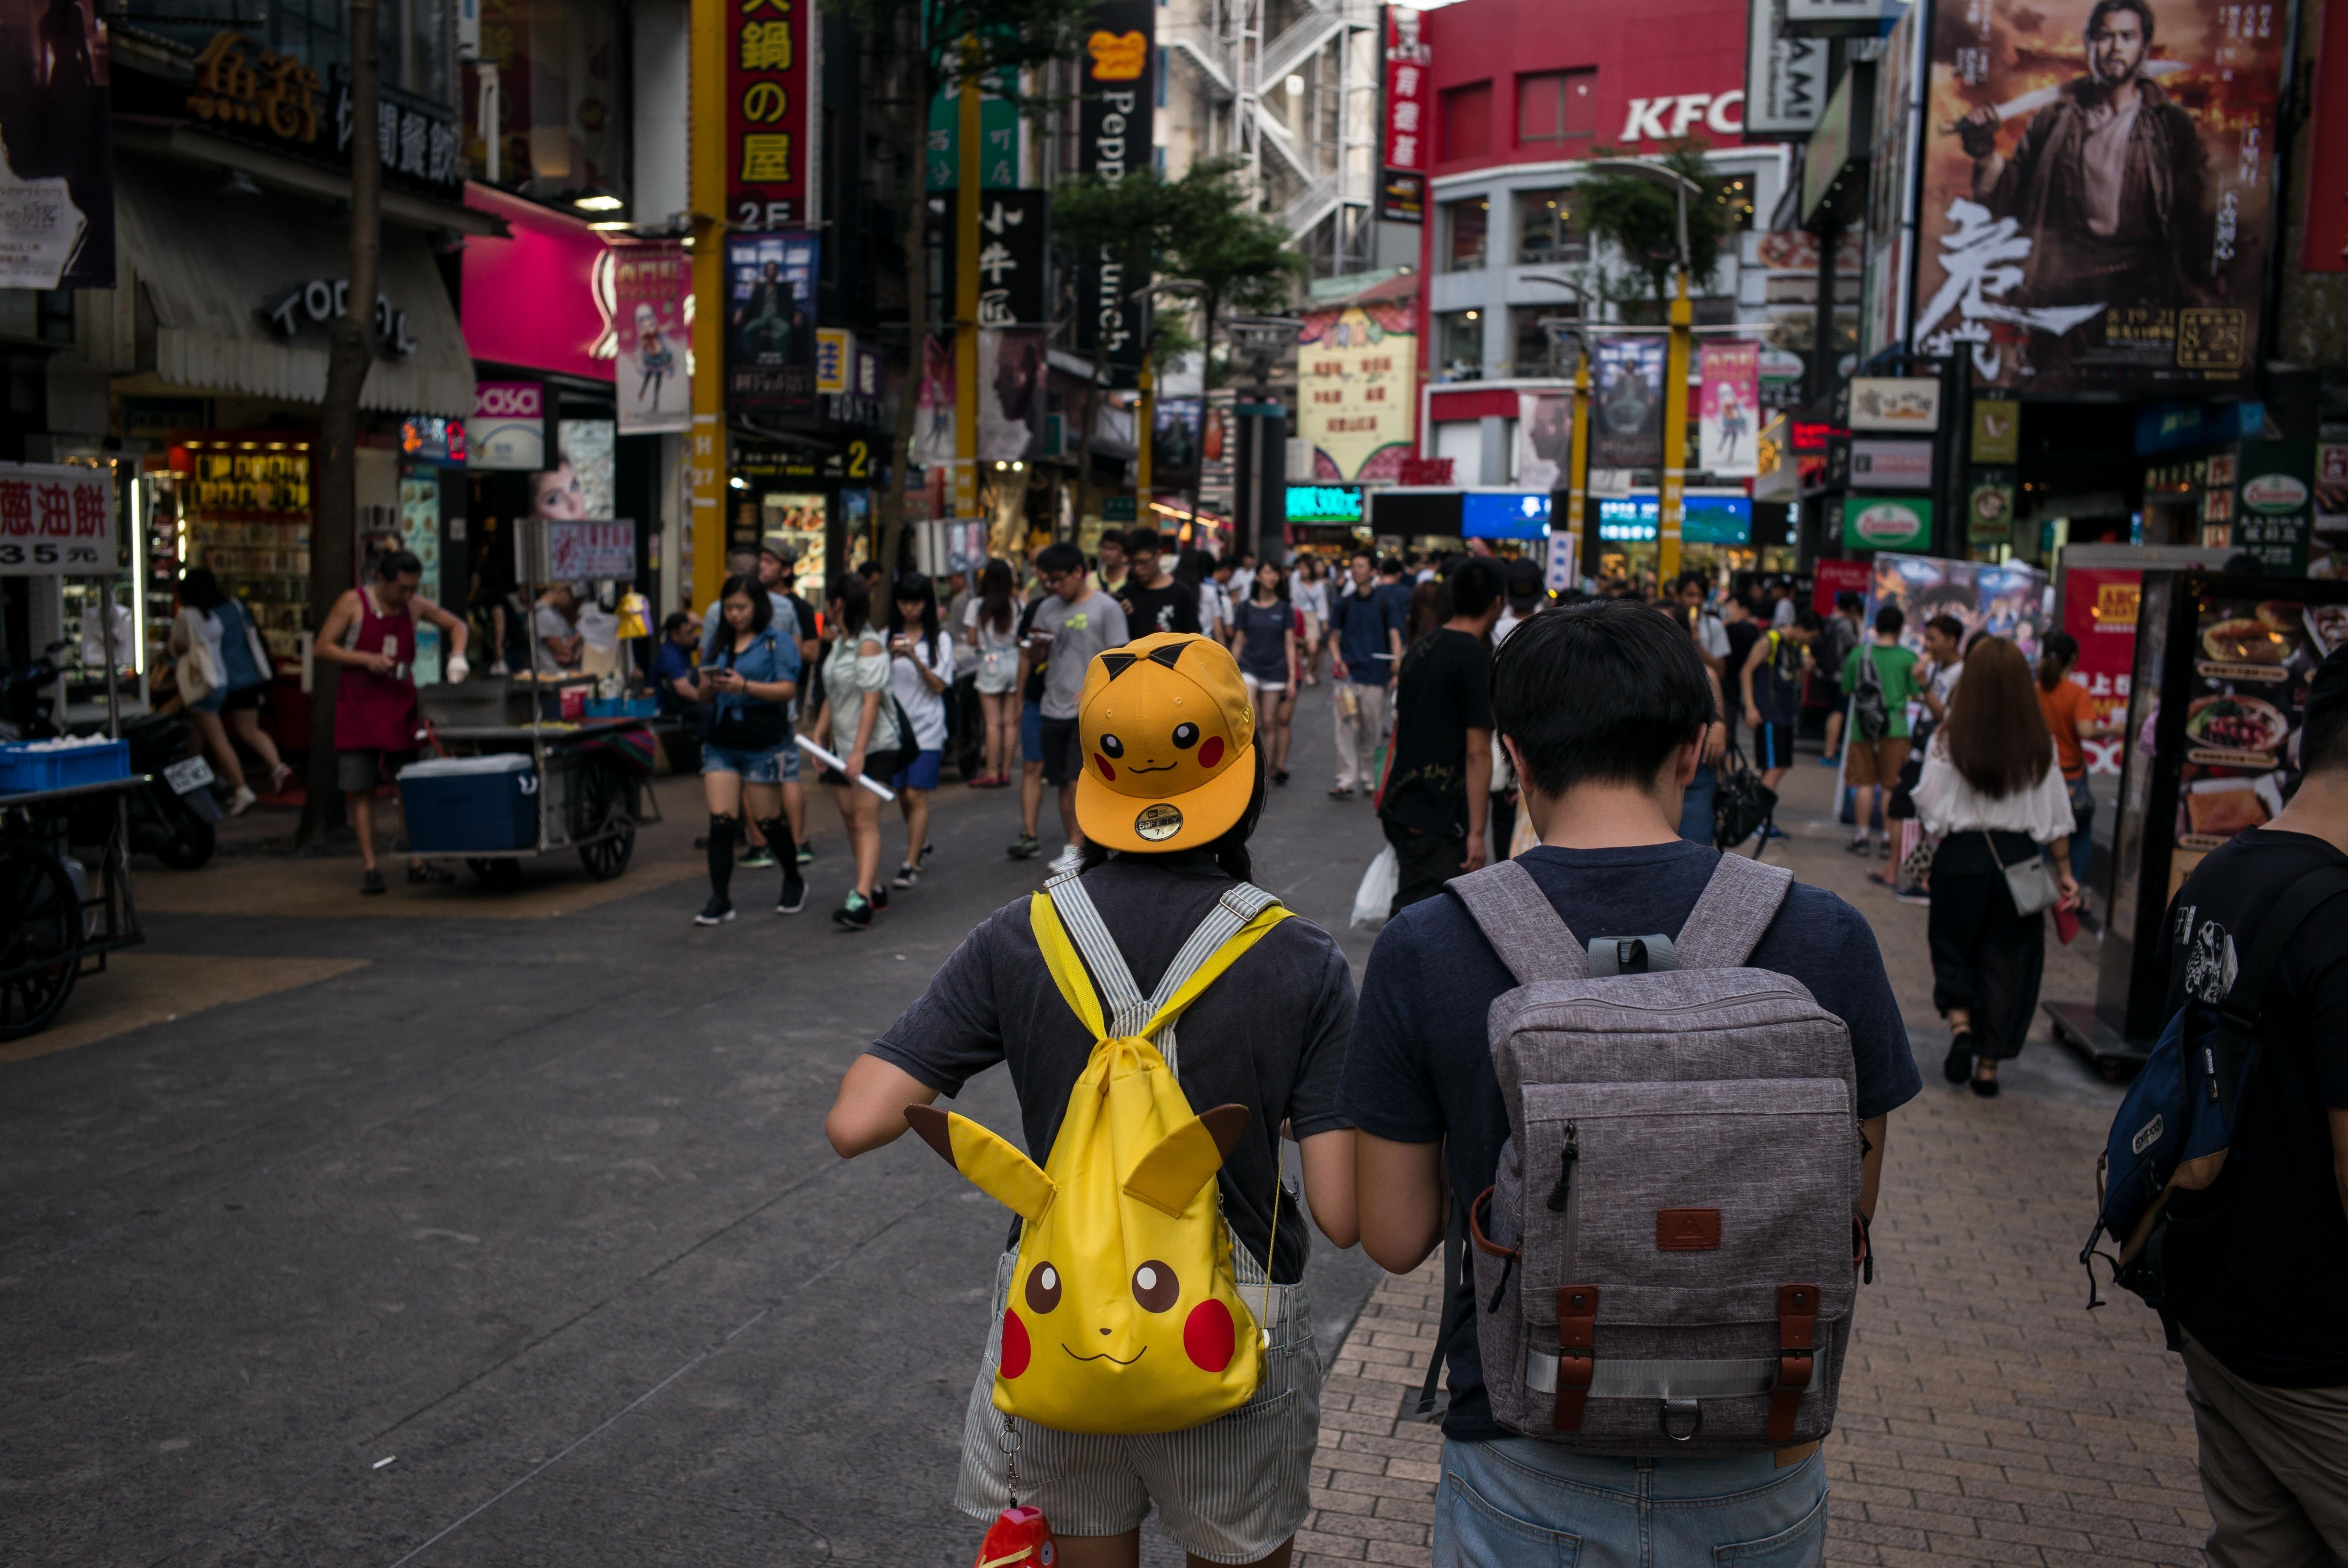 TAIPEI, TAIWAN - AUGUST 08:  People play Pokemon Go  on their smartphones on August 8, 2016 in Taipei, Taiwan. 'Pokemon Go,' which has been a smash-hit across the globe was launched in Taiwan on 6th August. Since its global launch, the mobile game has been an unexpected megahit among users who have taken to the streets with their smartphones.  (Photo by Billy H.C. Kwok/Getty Images)